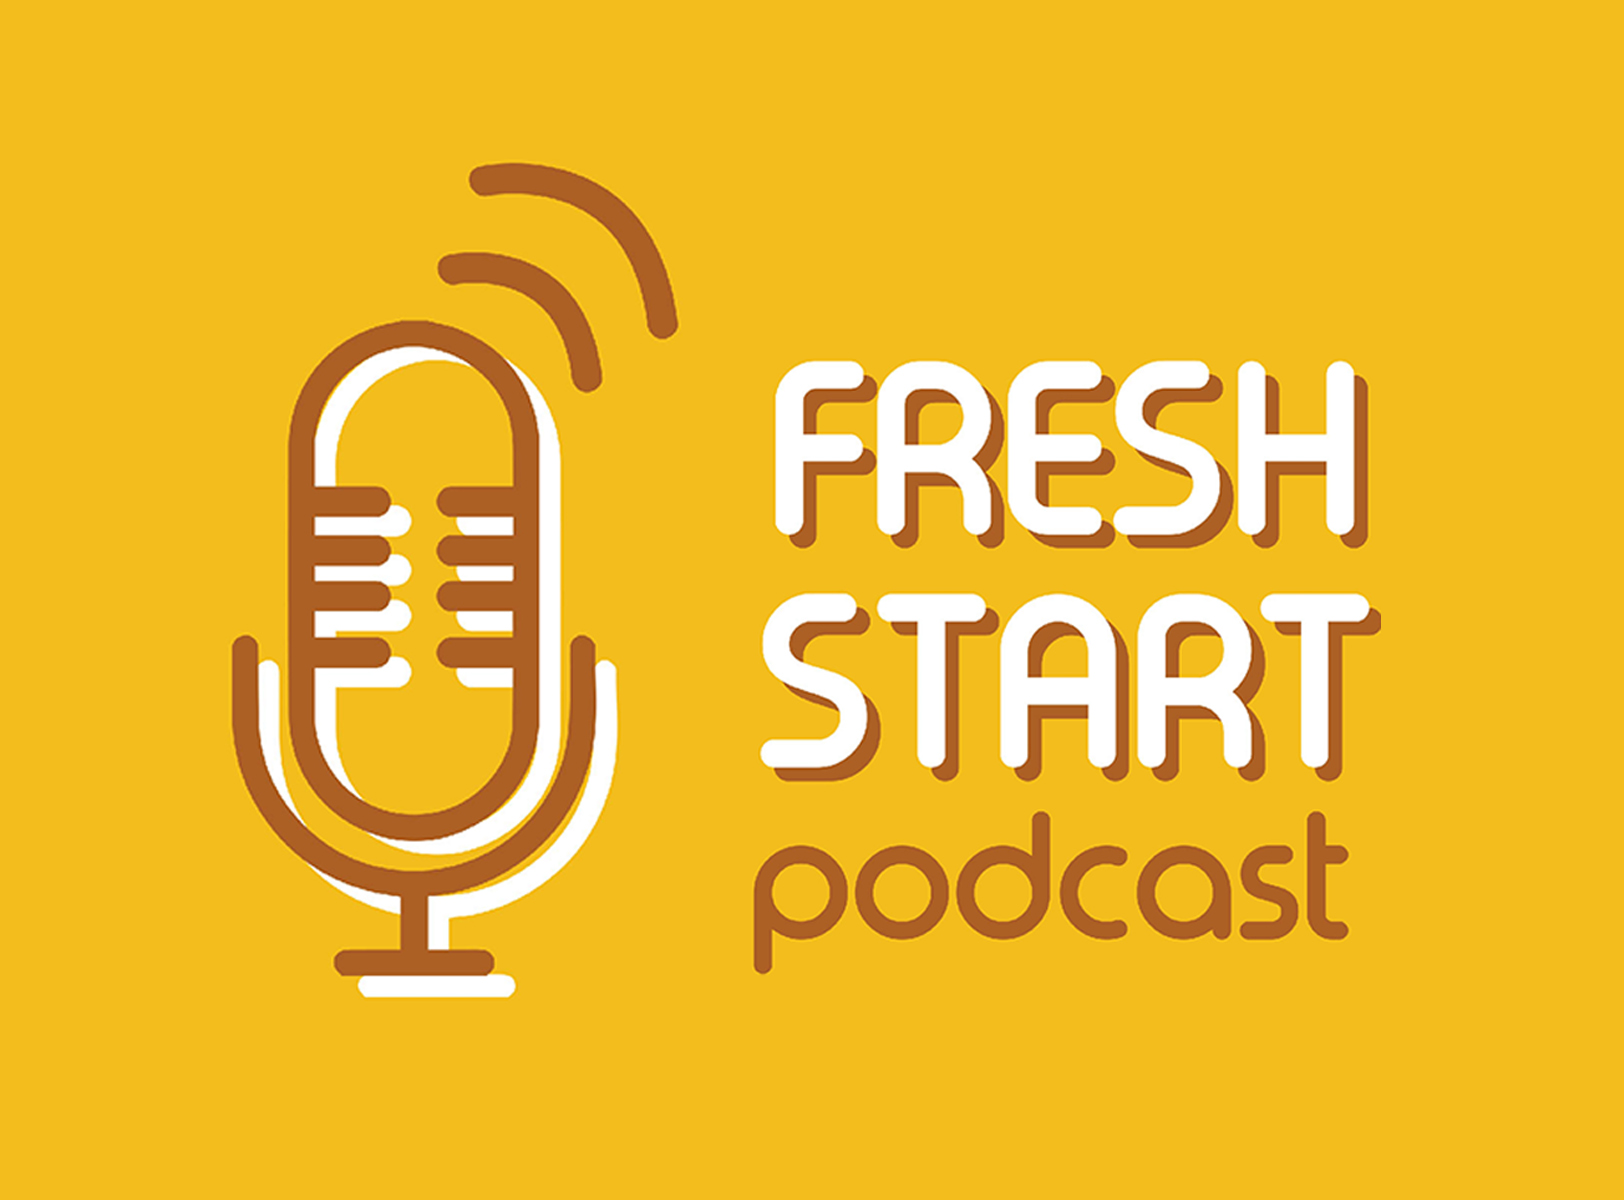 Fresh Start: Podcast News (5/5/2020 Tue.)